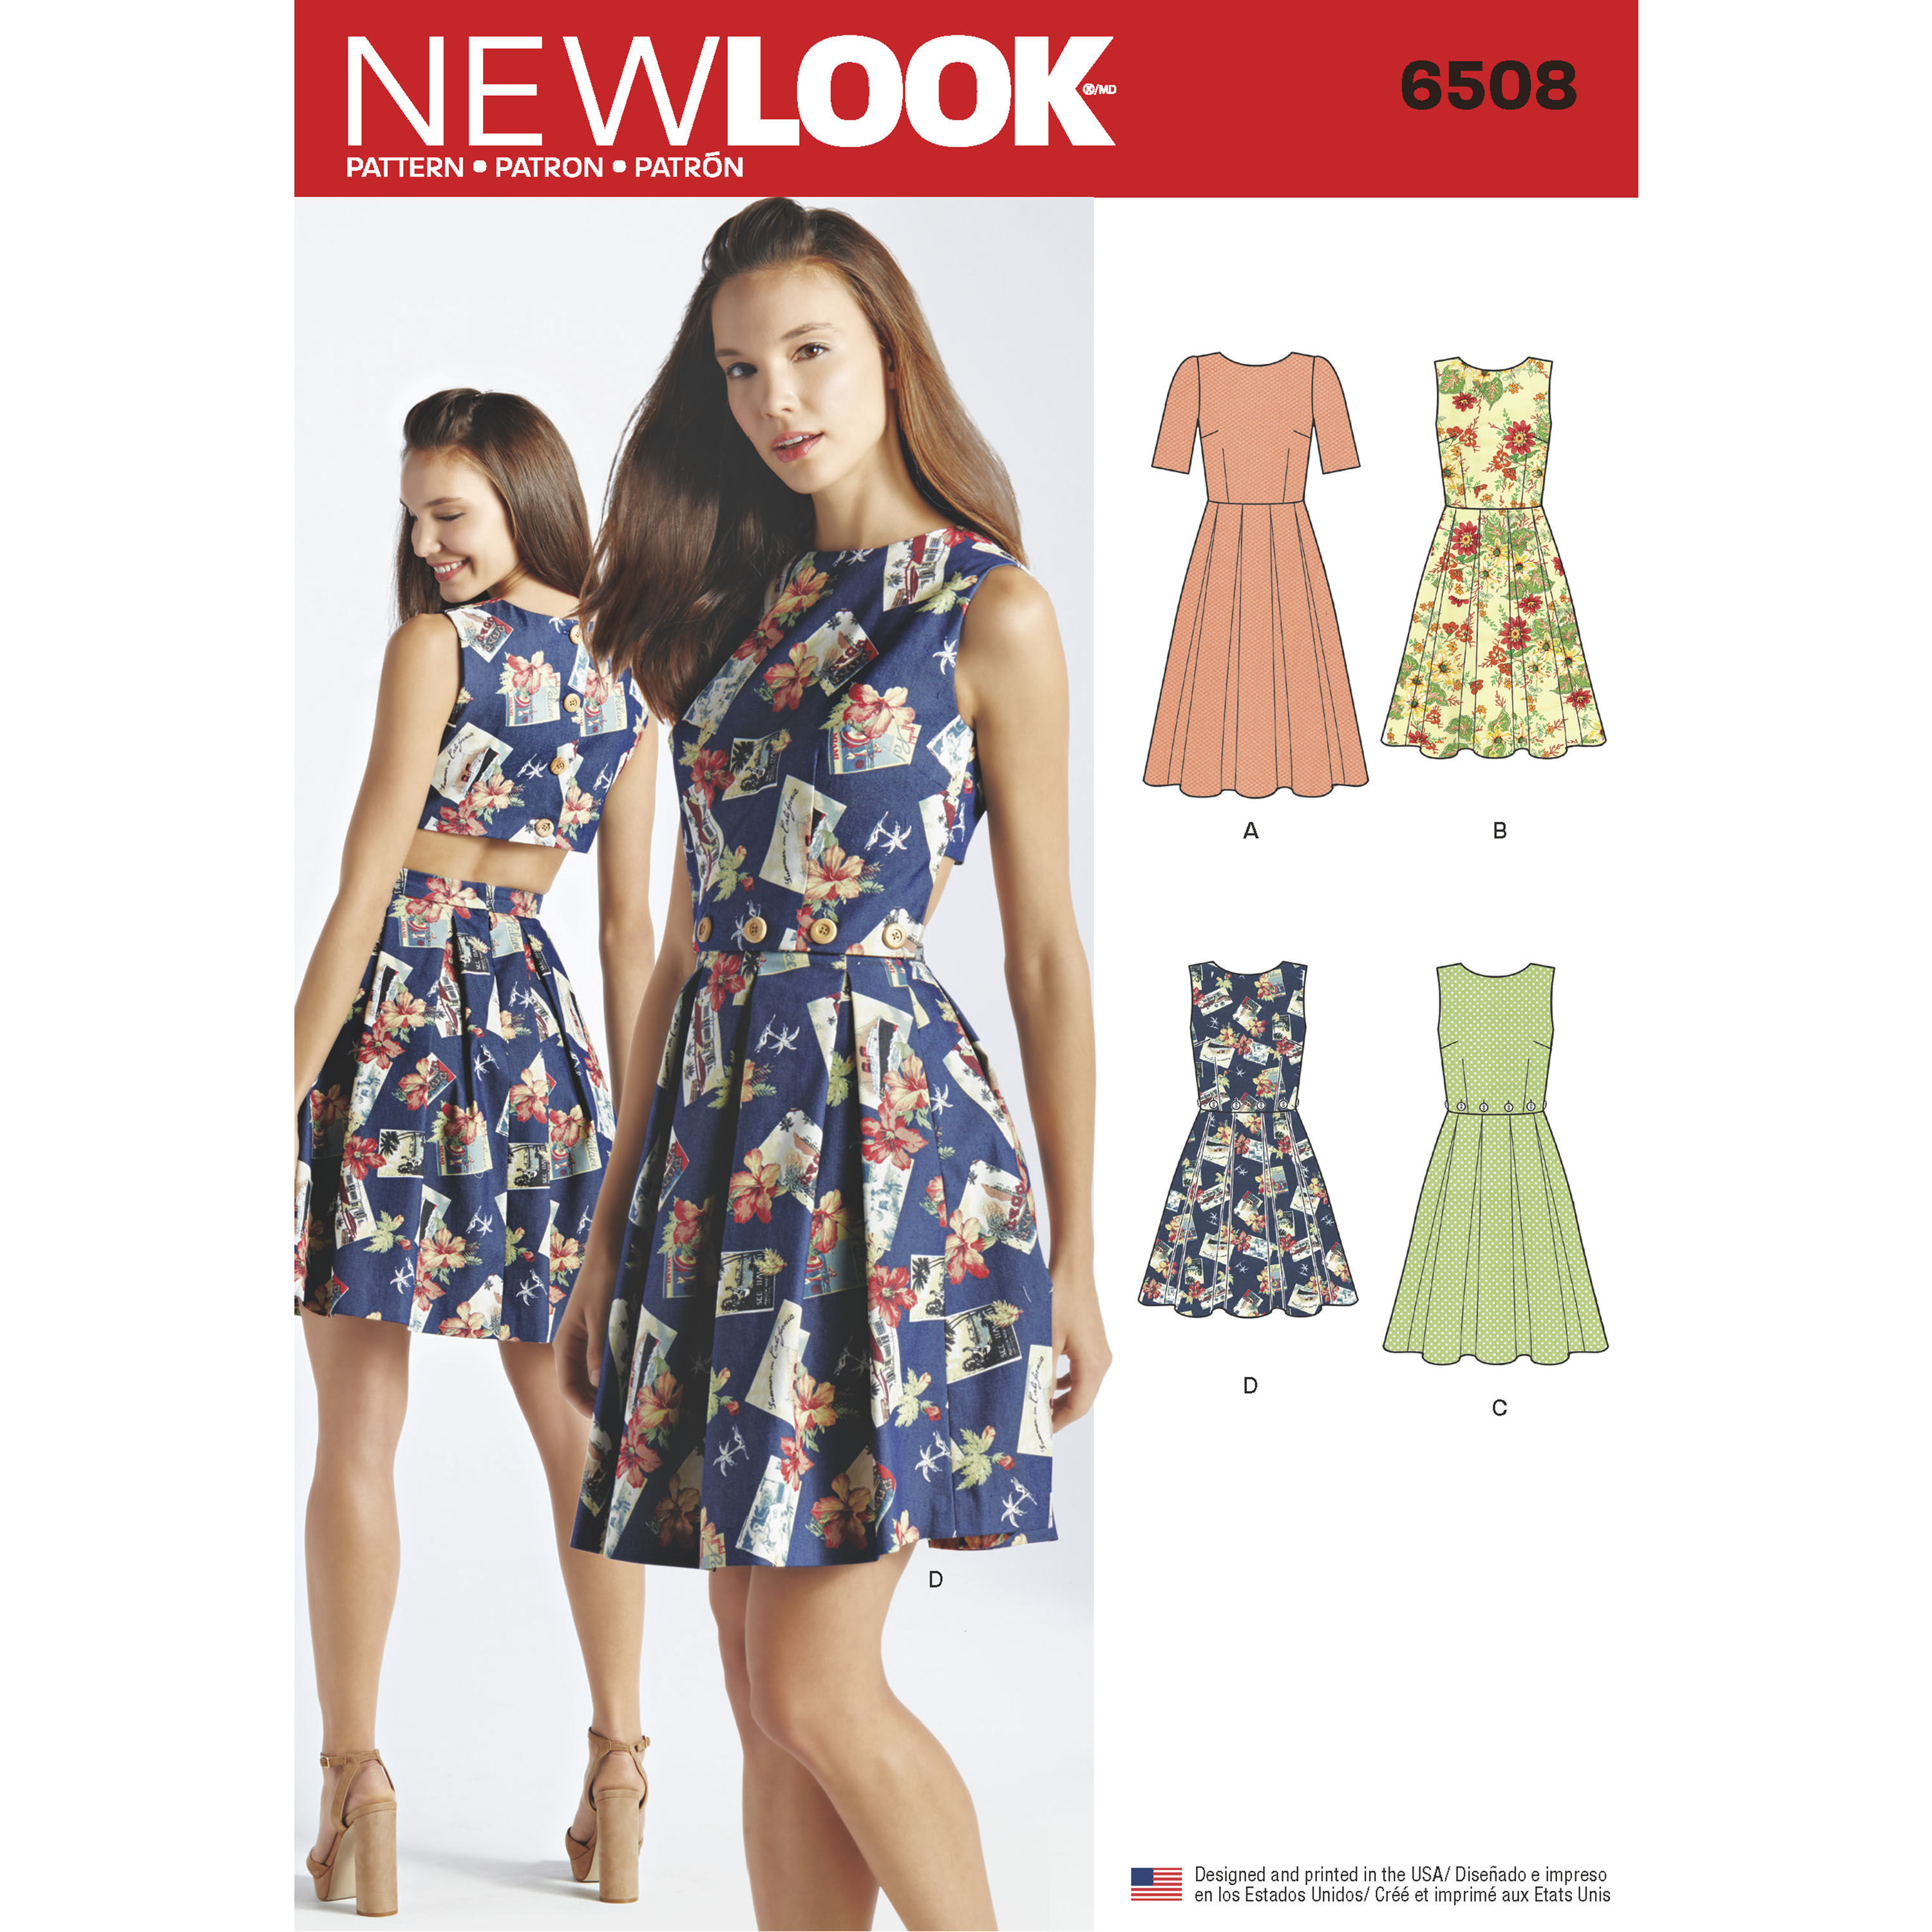 New Look Pattern 6508 Misses' Dress with Open or Closed Back Variations